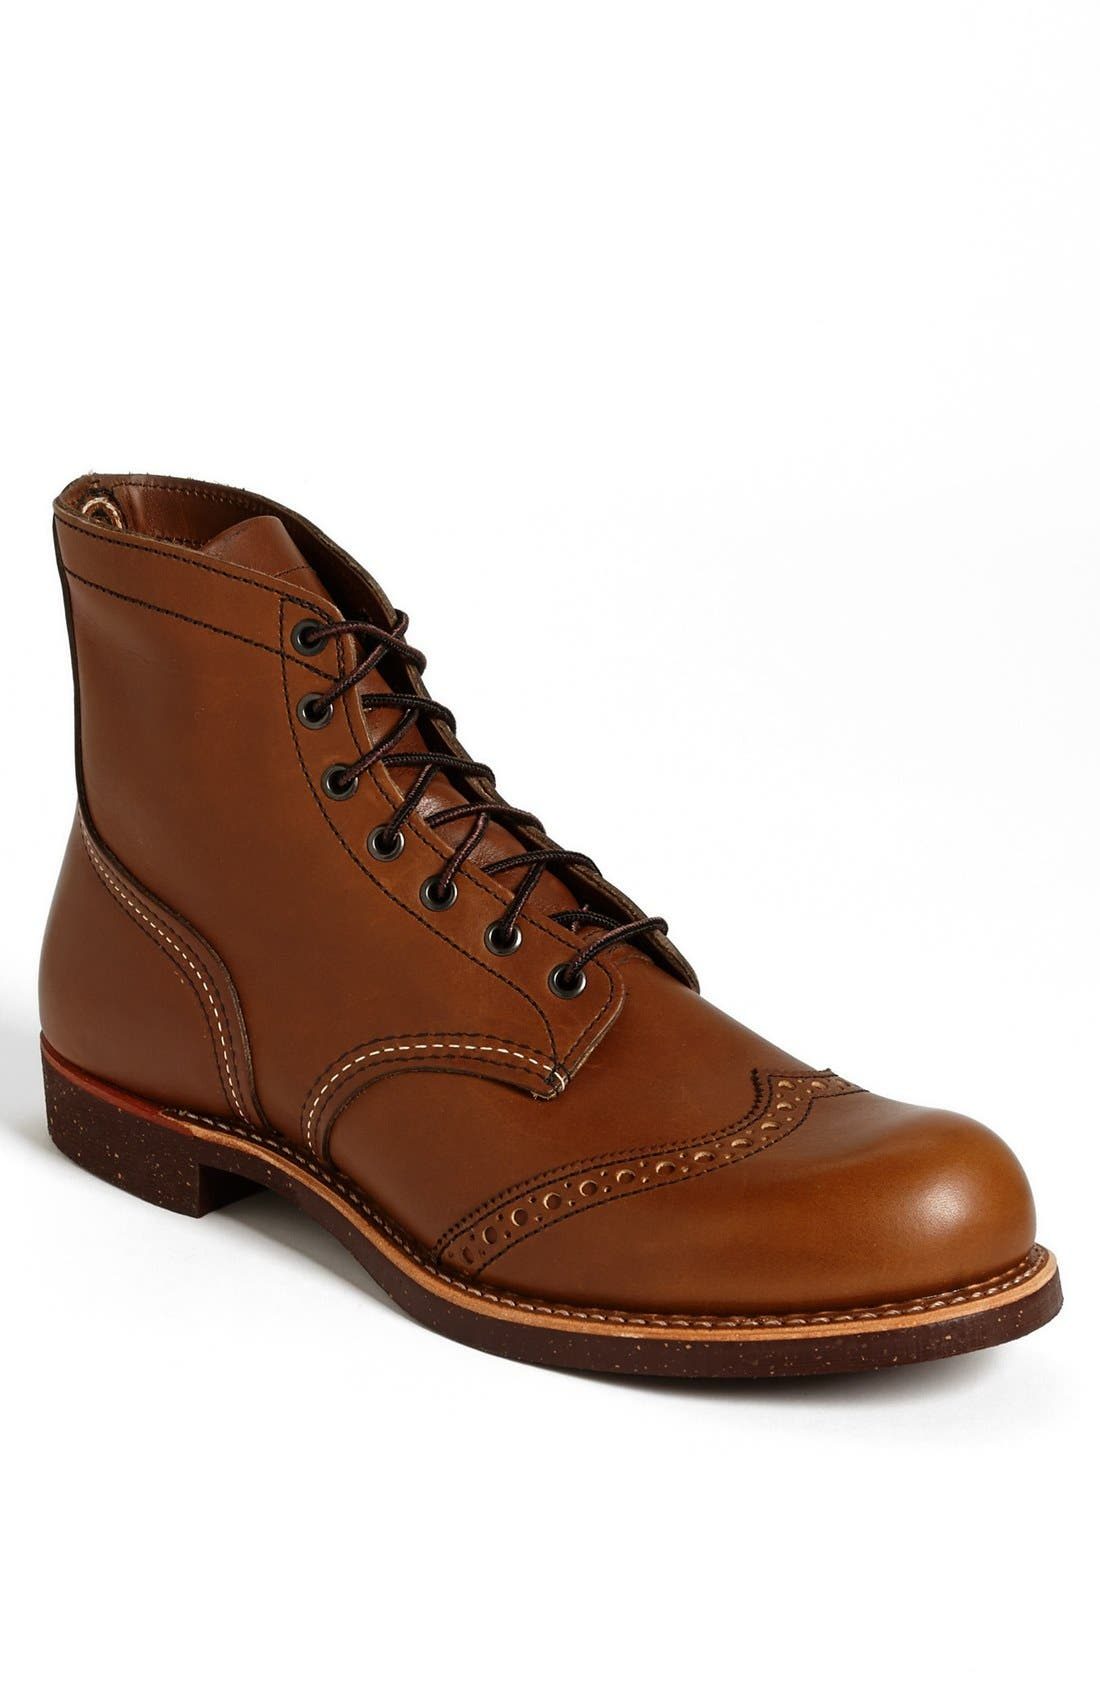 Main Image - Red Wing 'Brogue Ranger' Wingtip Boot